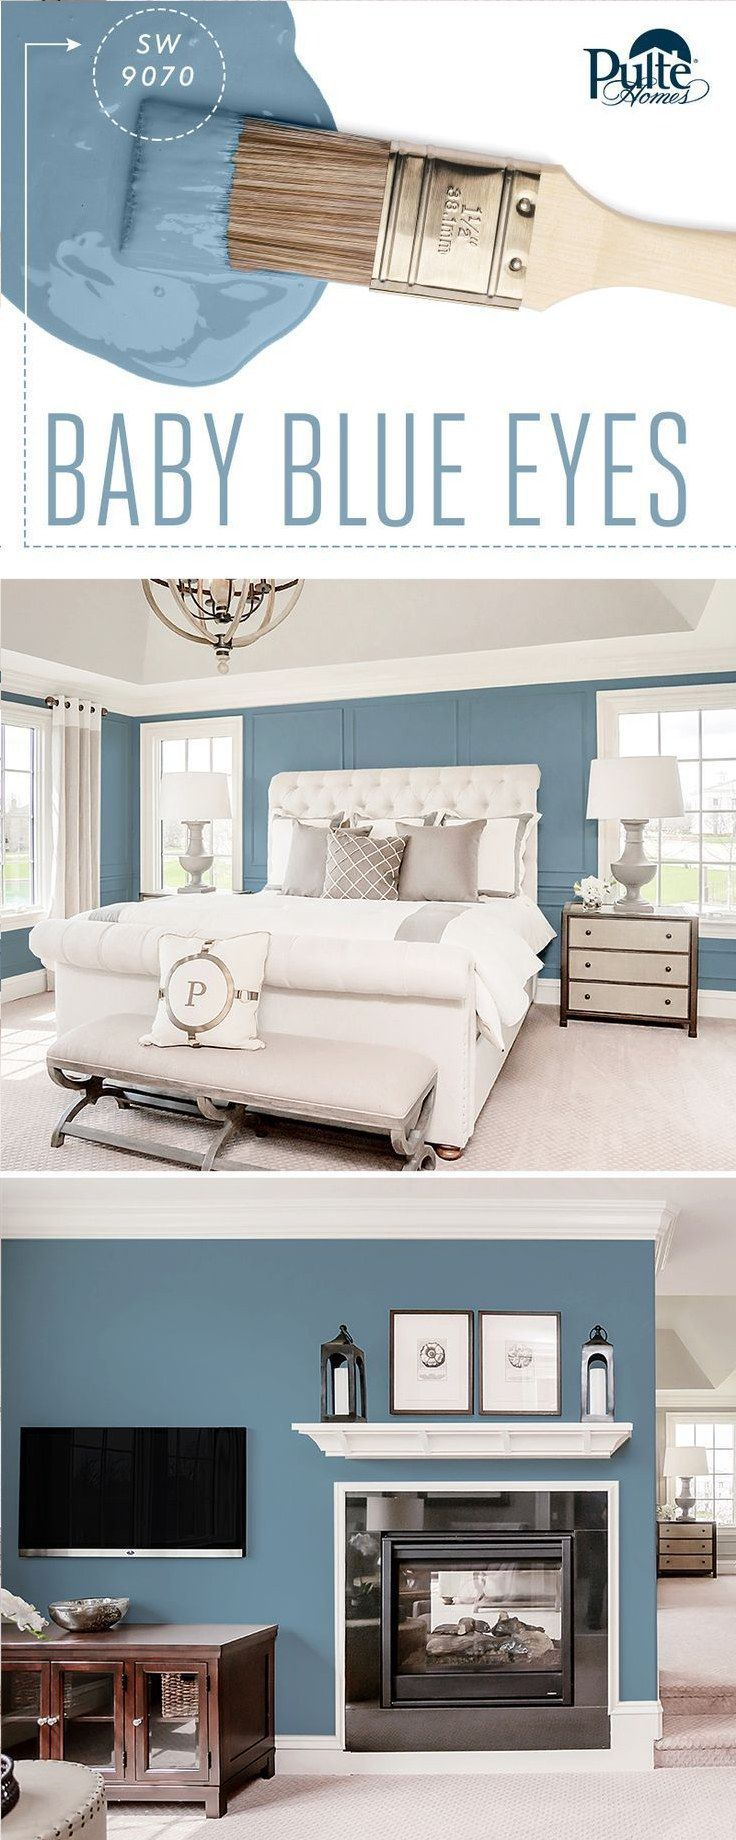 Bedroom Decor. All The Bedroom Design Ideas You Will Ever